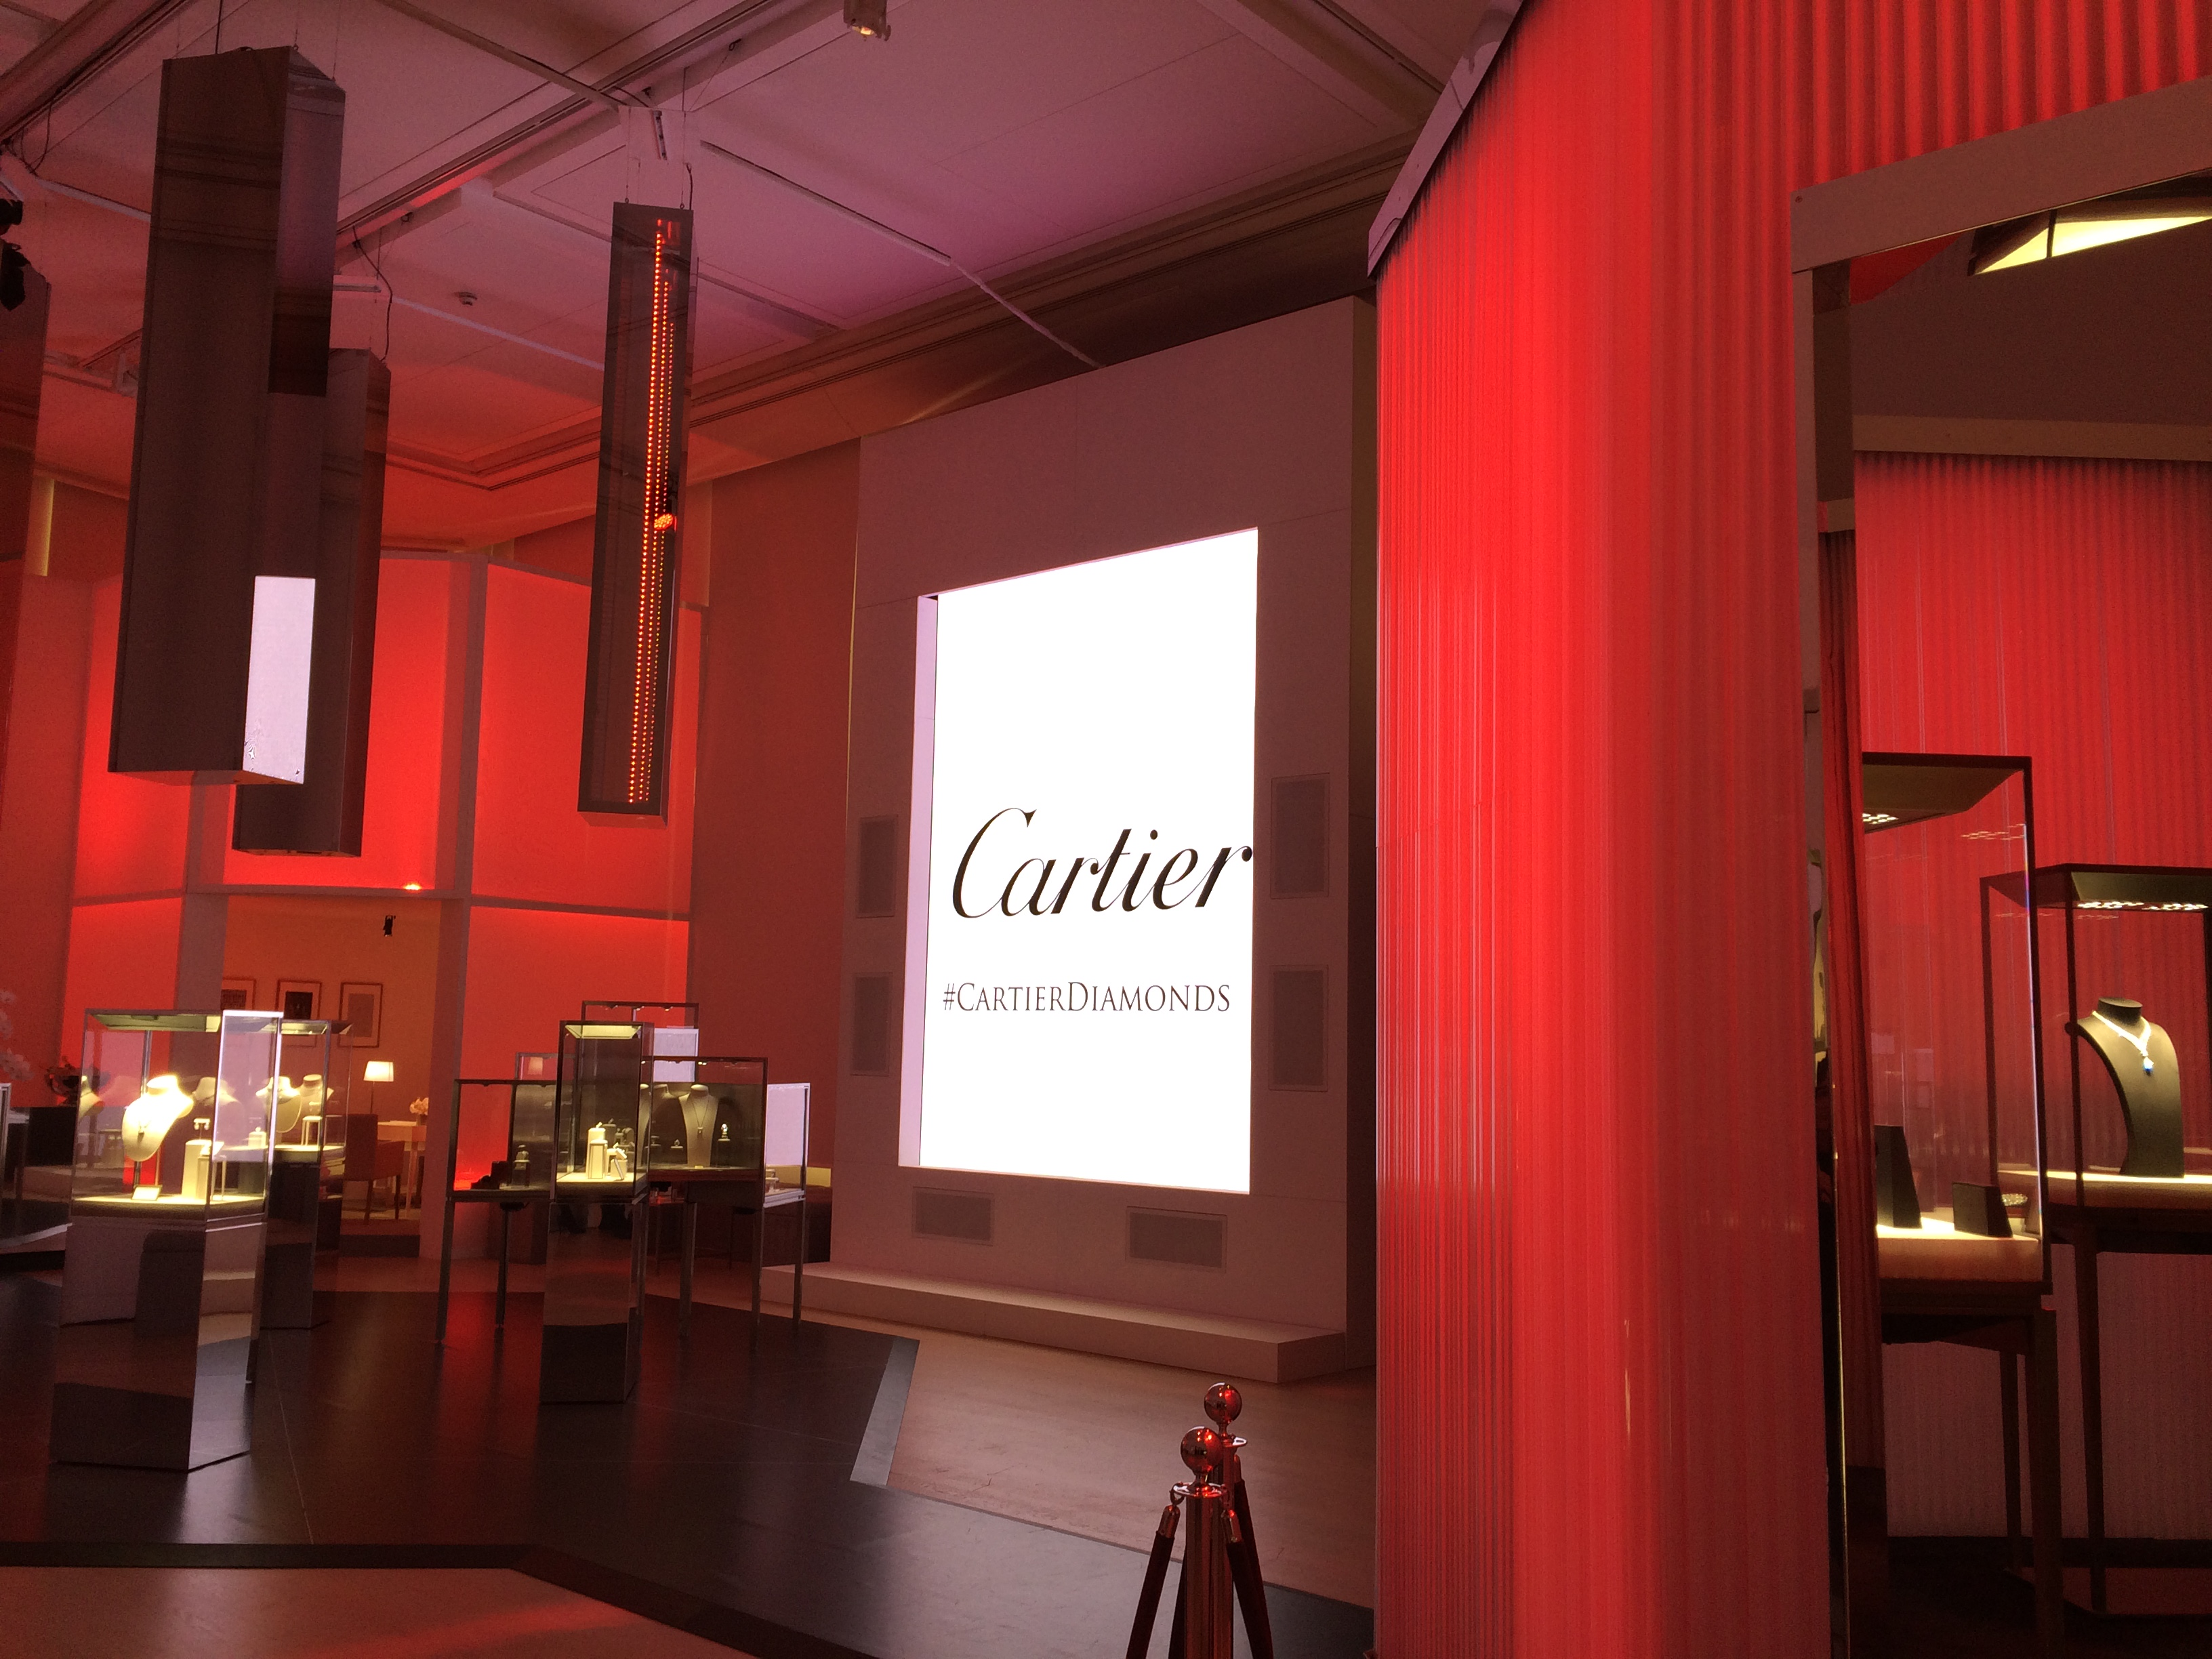 Cartier Exhibition